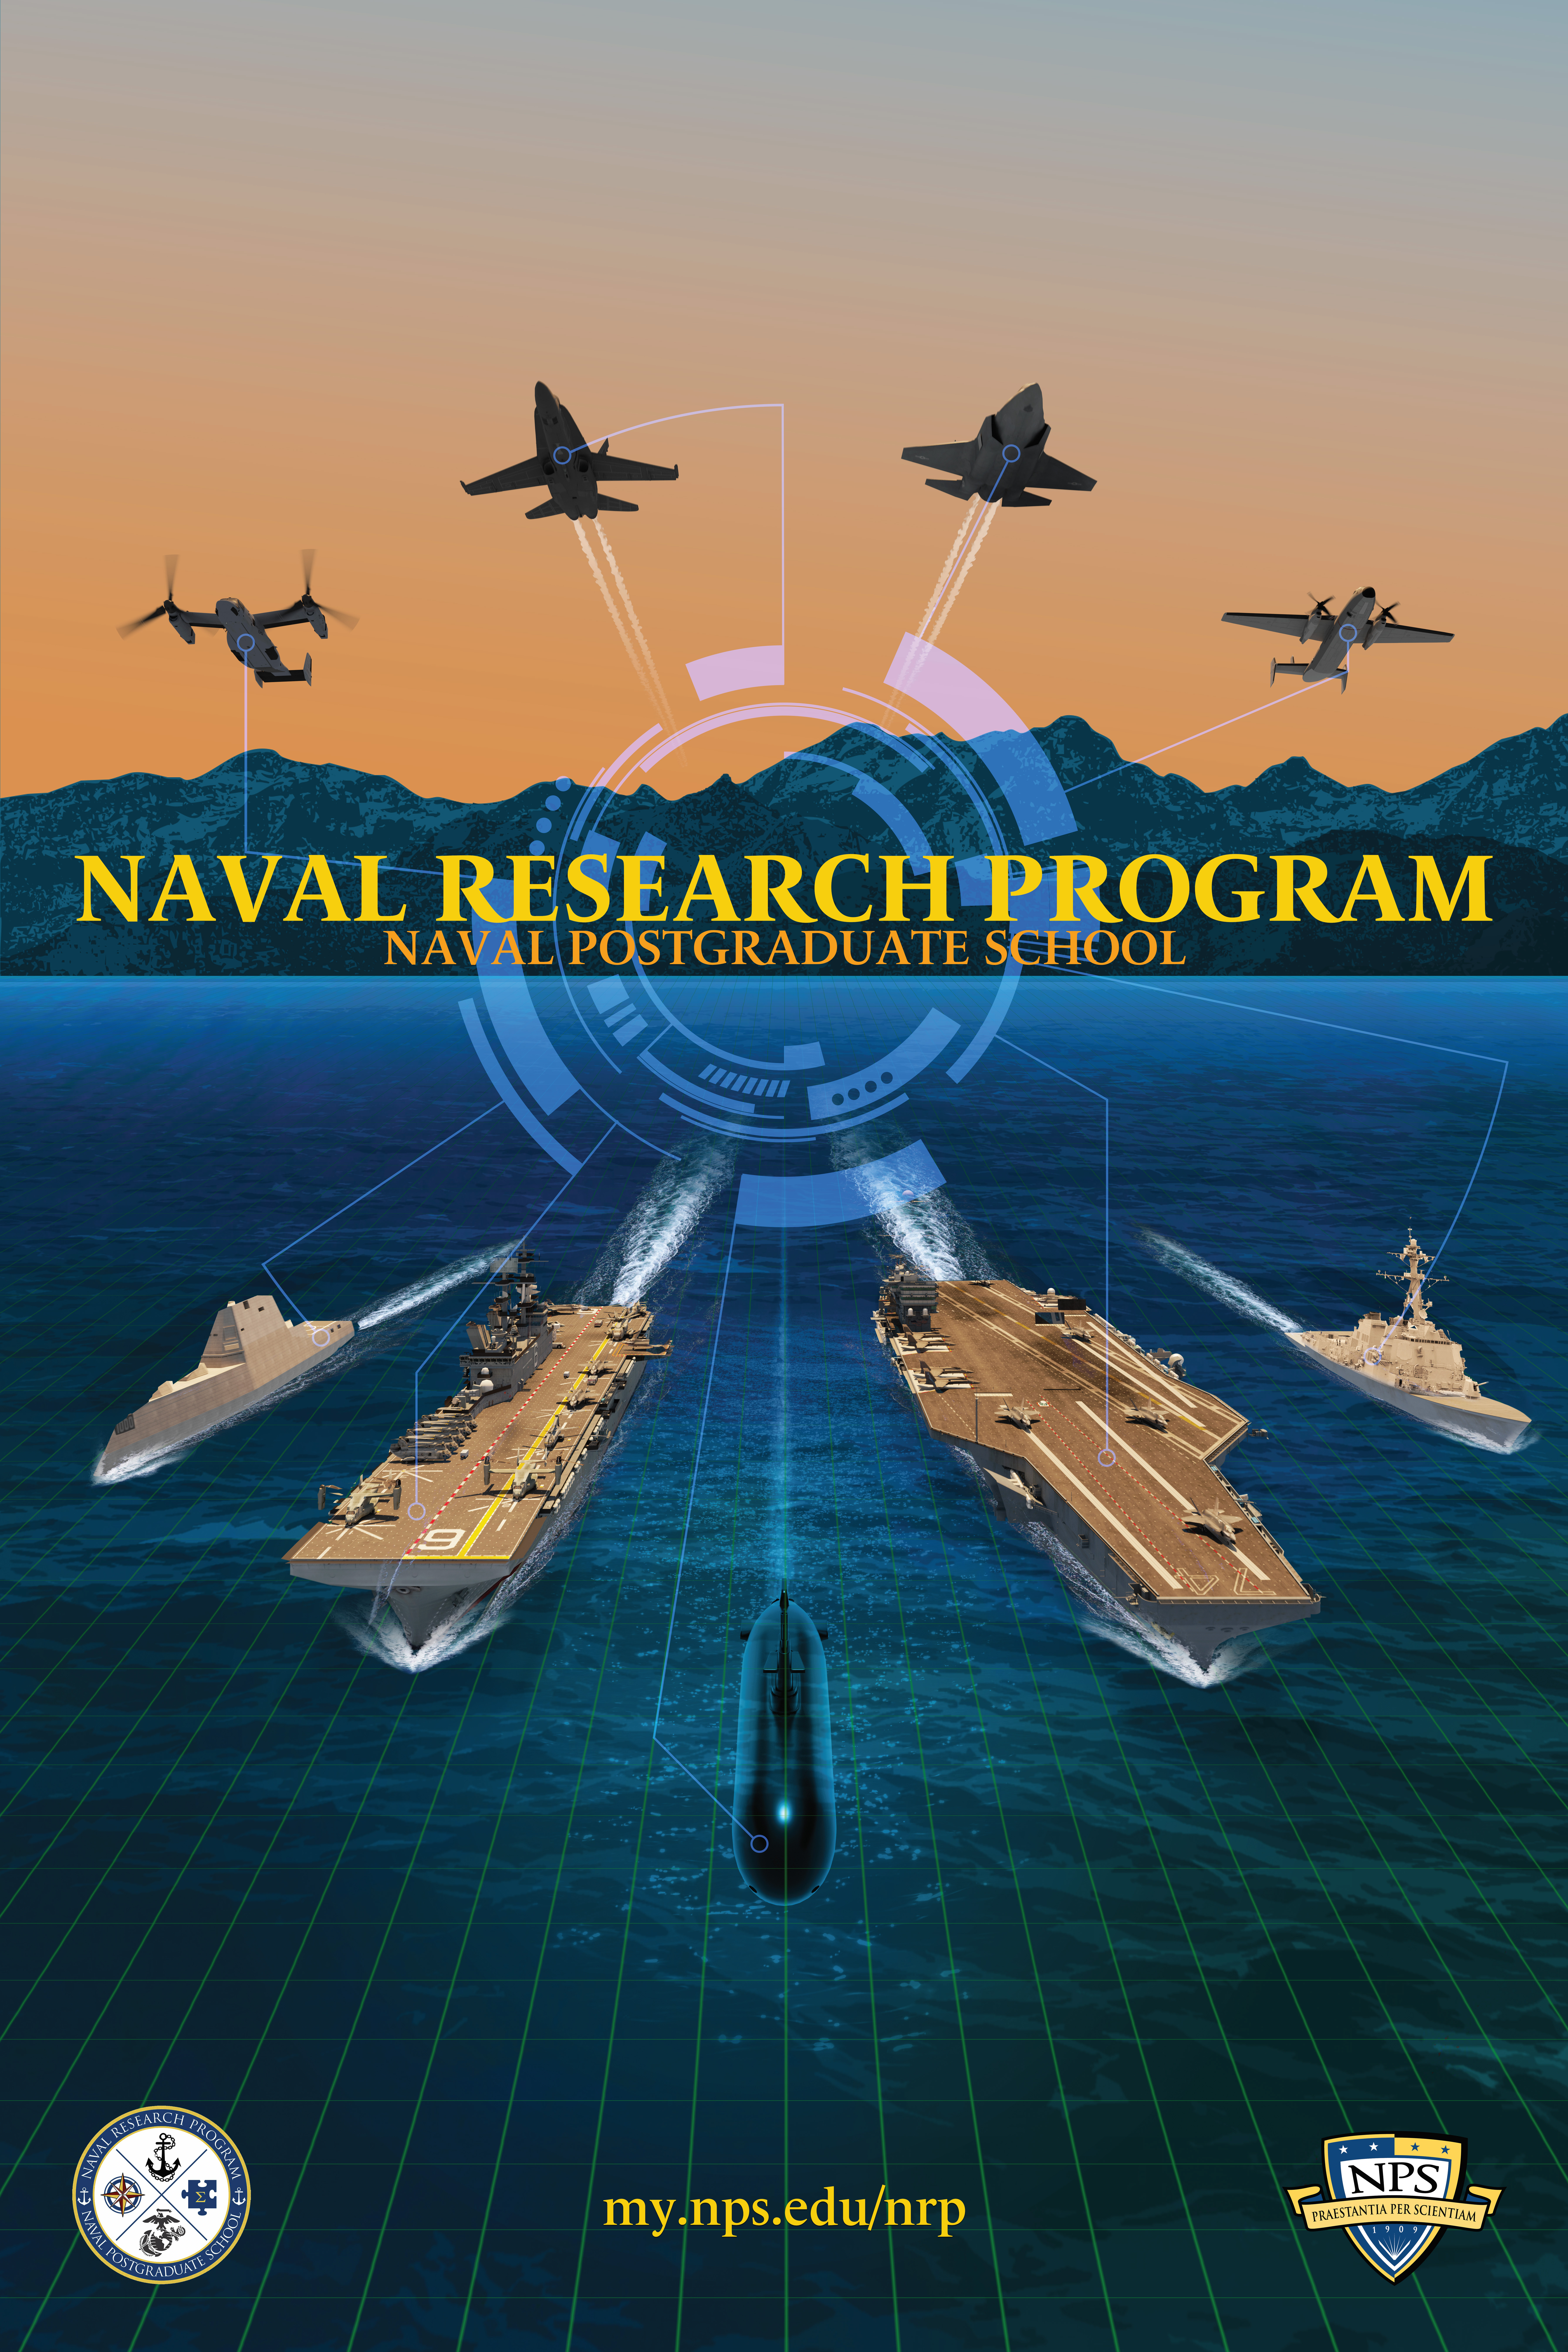 Naval Research Program Marketing Poster